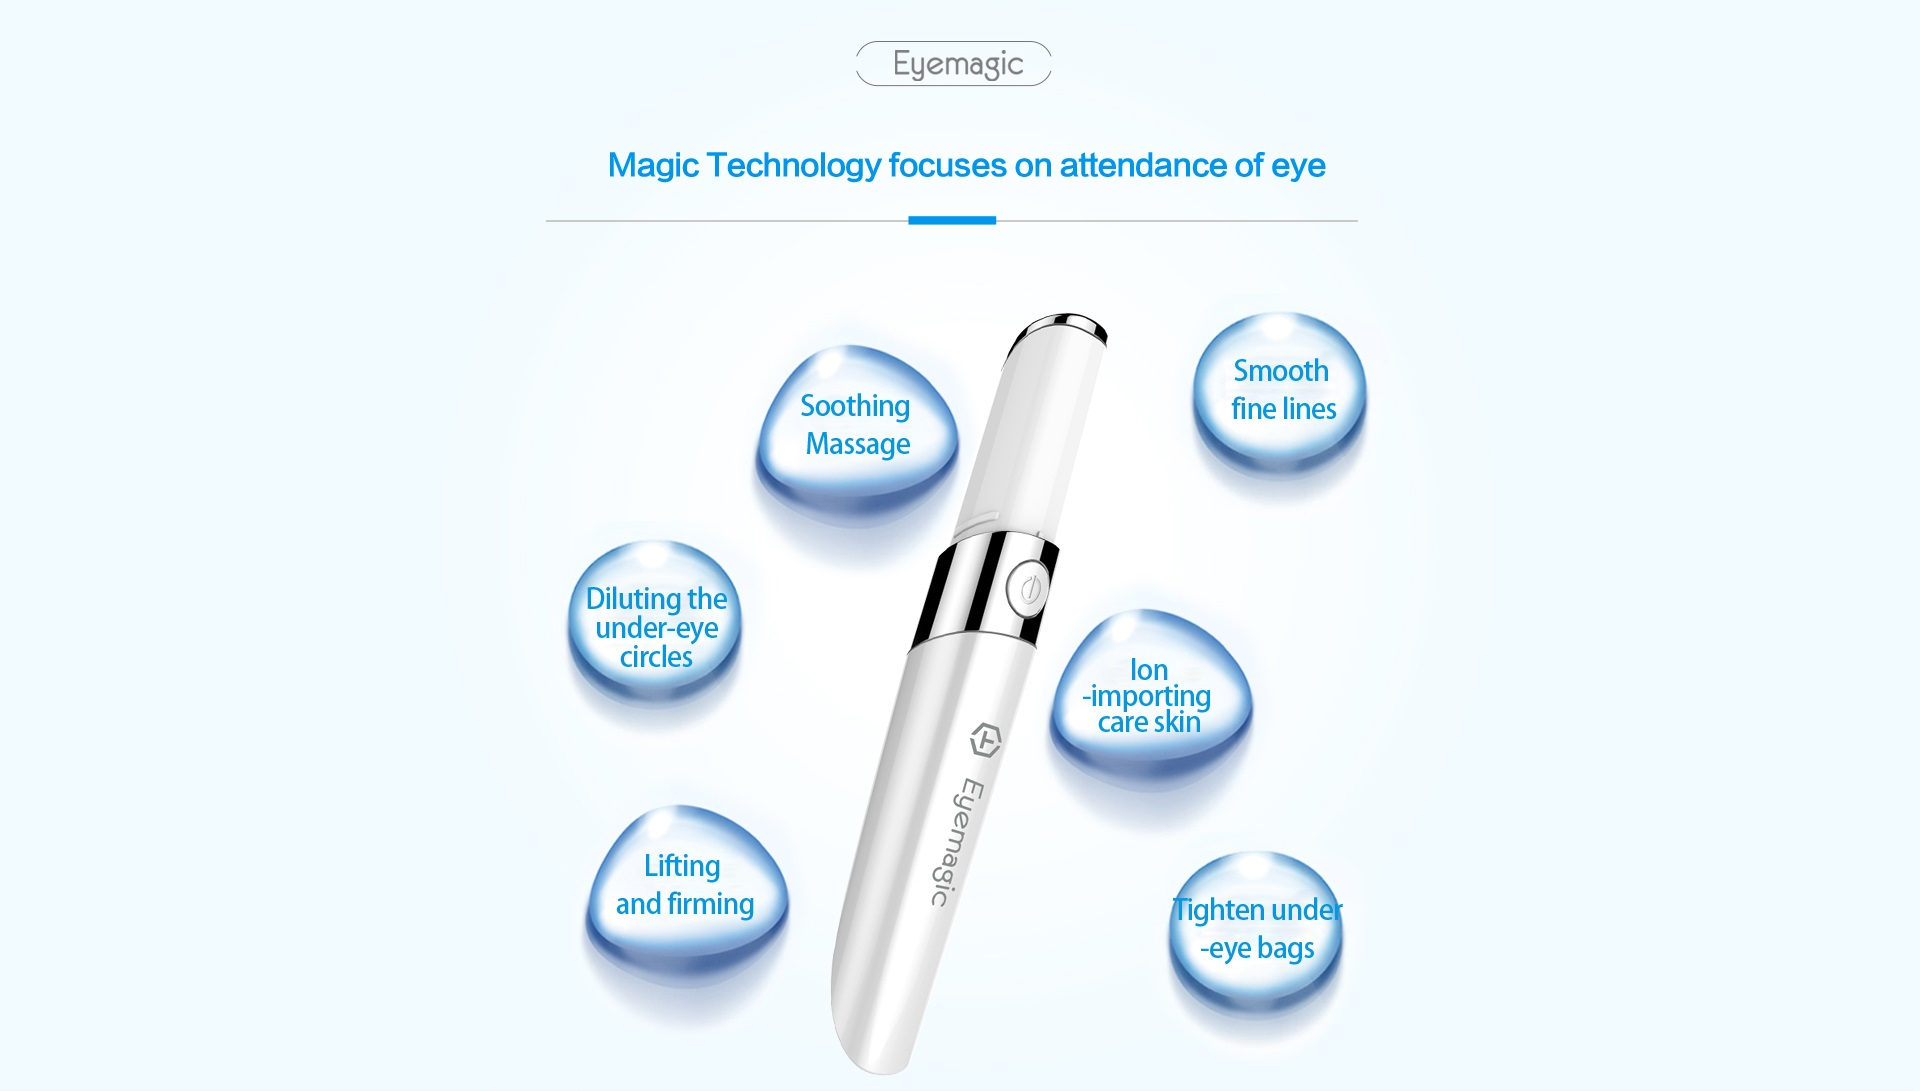 Magic Technology focuses on attendance of eye